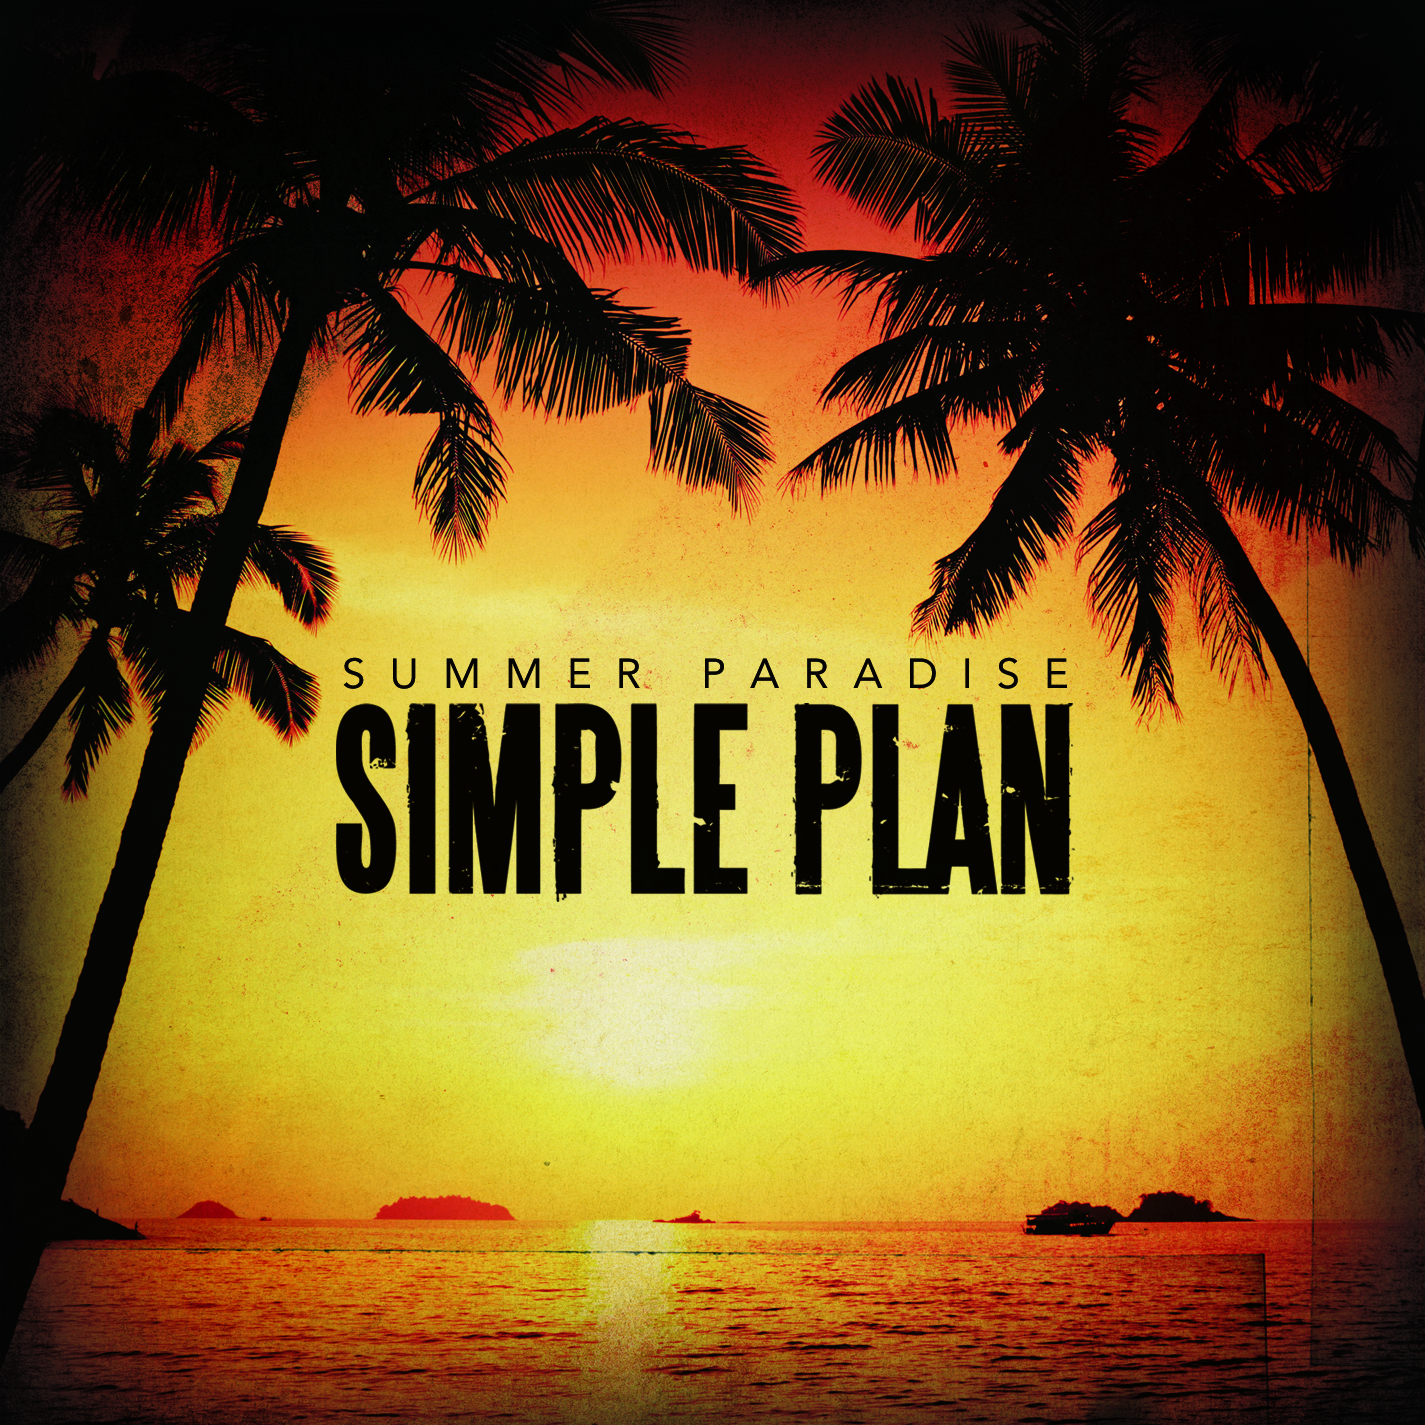 News Added Aug 26, 2012 https://www.facebook.com/simpleplan Submitted By Nii Track list: Added Aug 26, 2012 01. Summer Paradise (feat. Sean Paul) 02. Summer Paradise (feat. K'naan) 03. Summer Paradise 04. Astronaut (Naked Version) 05. Loser of the Year (Acoustic Version) Submitted By Nii